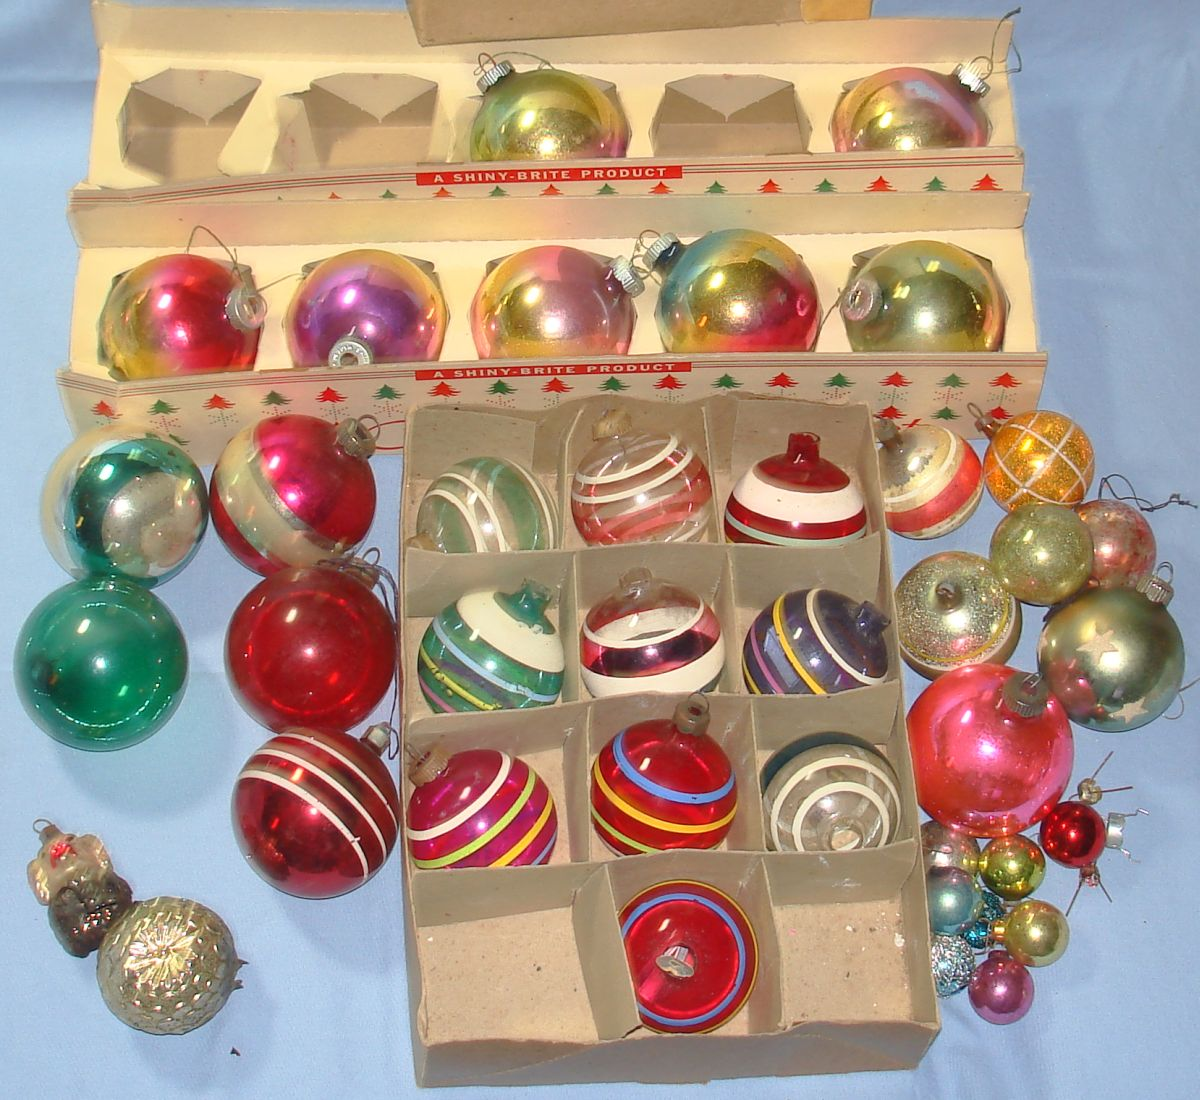 Shiny Brite Ornaments Image From Vintagetoys